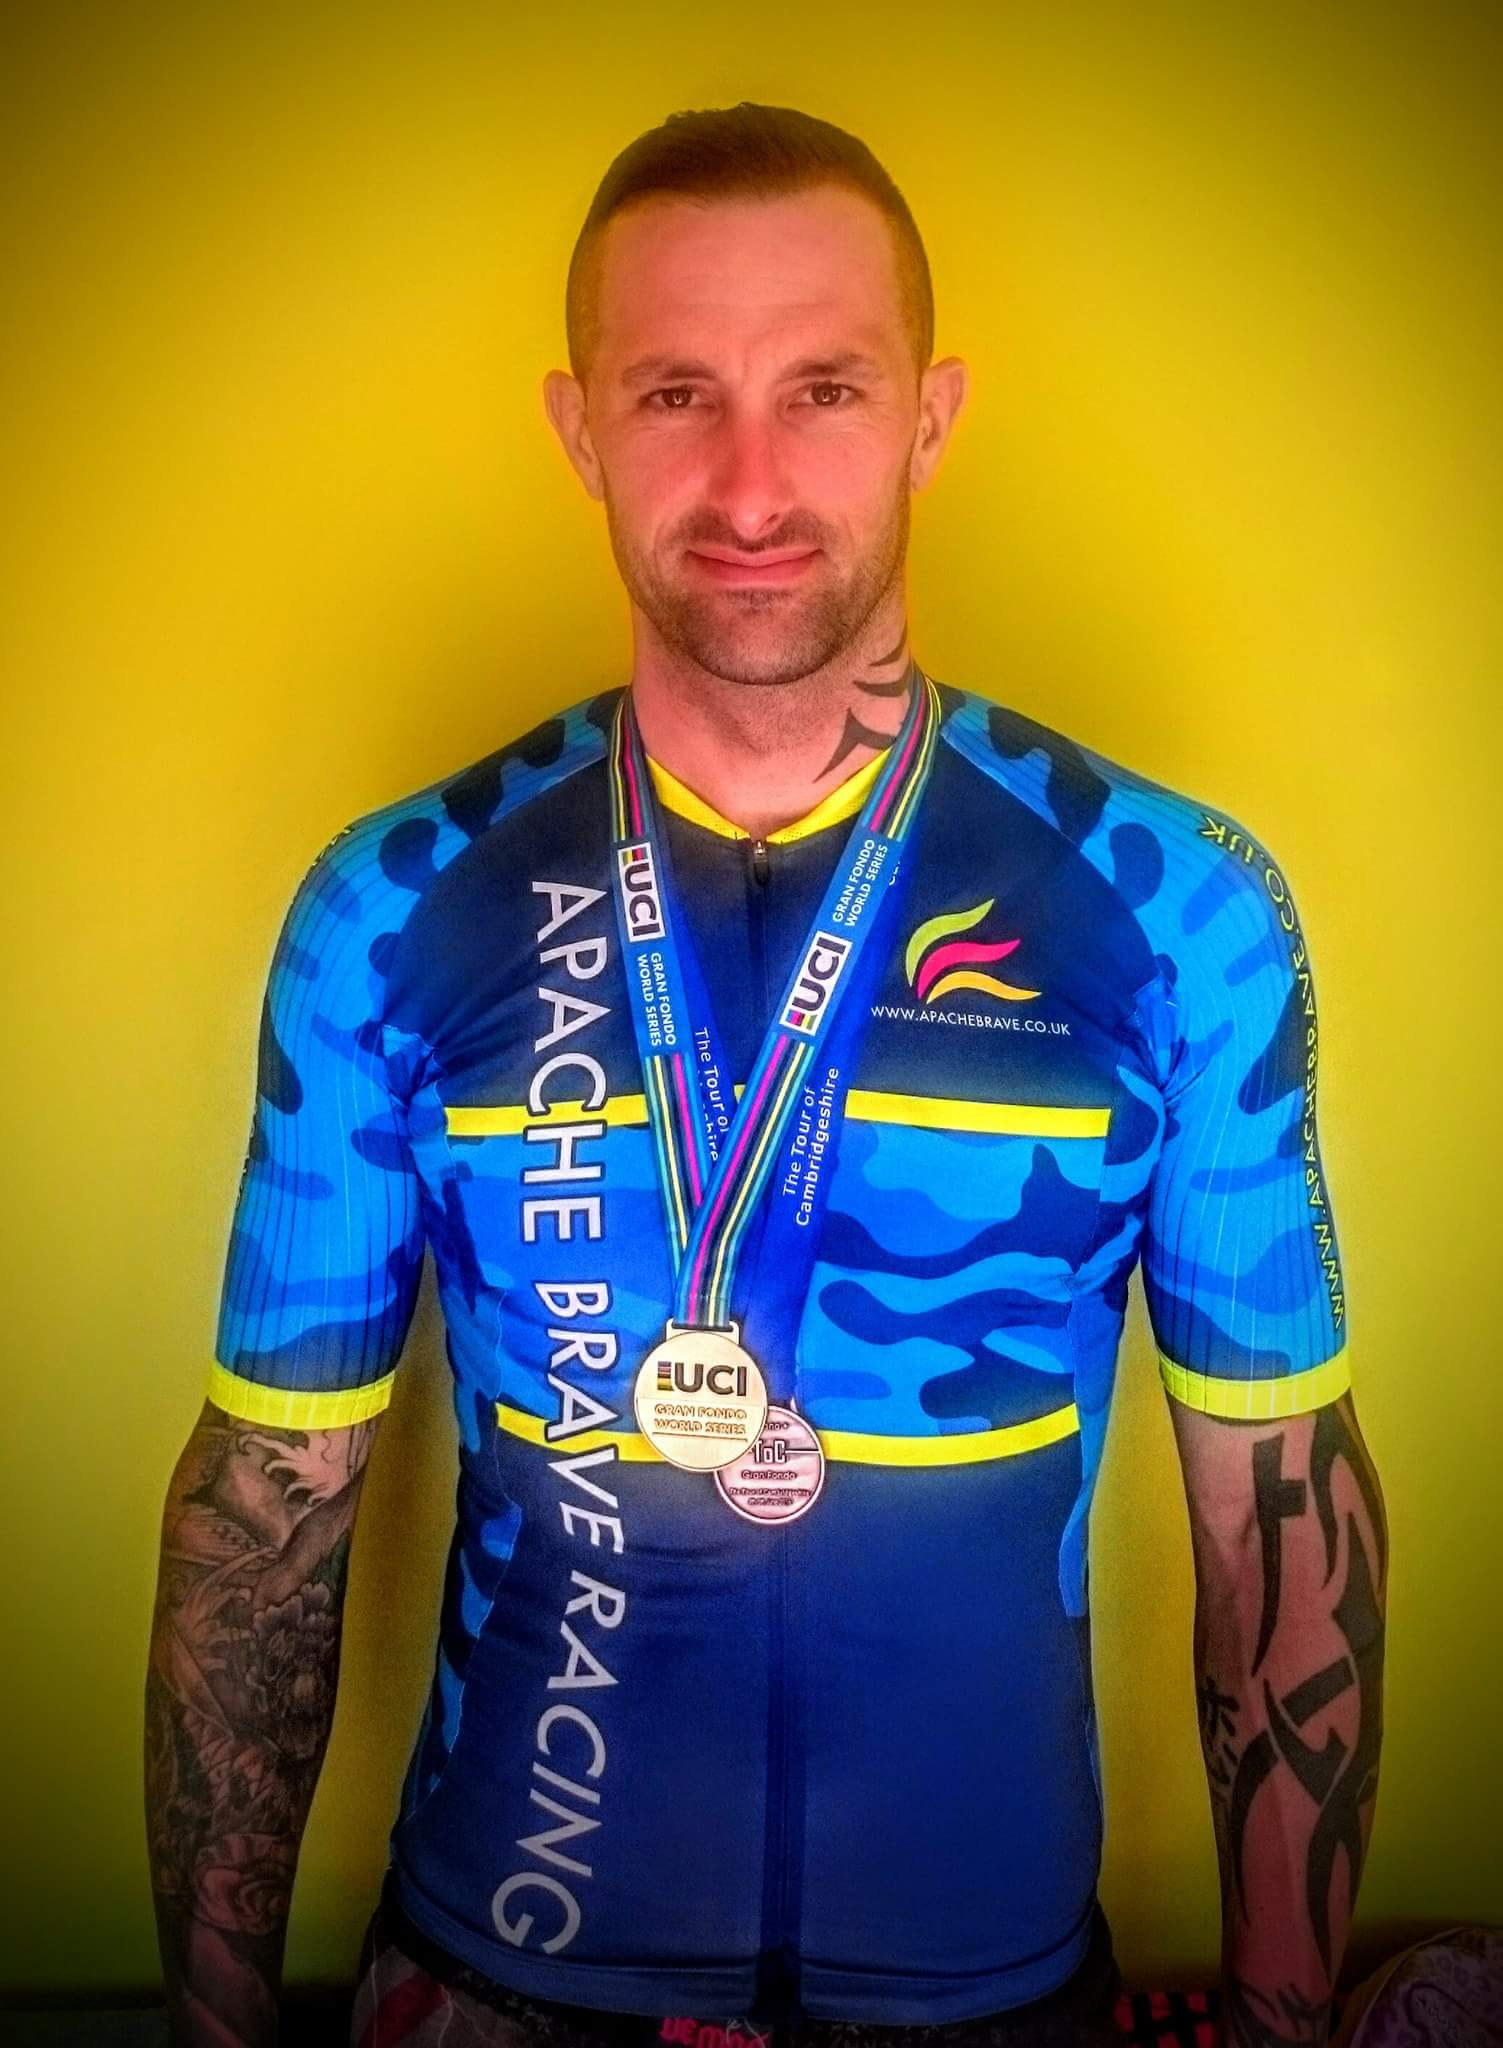 Steve Ingram Cyclist